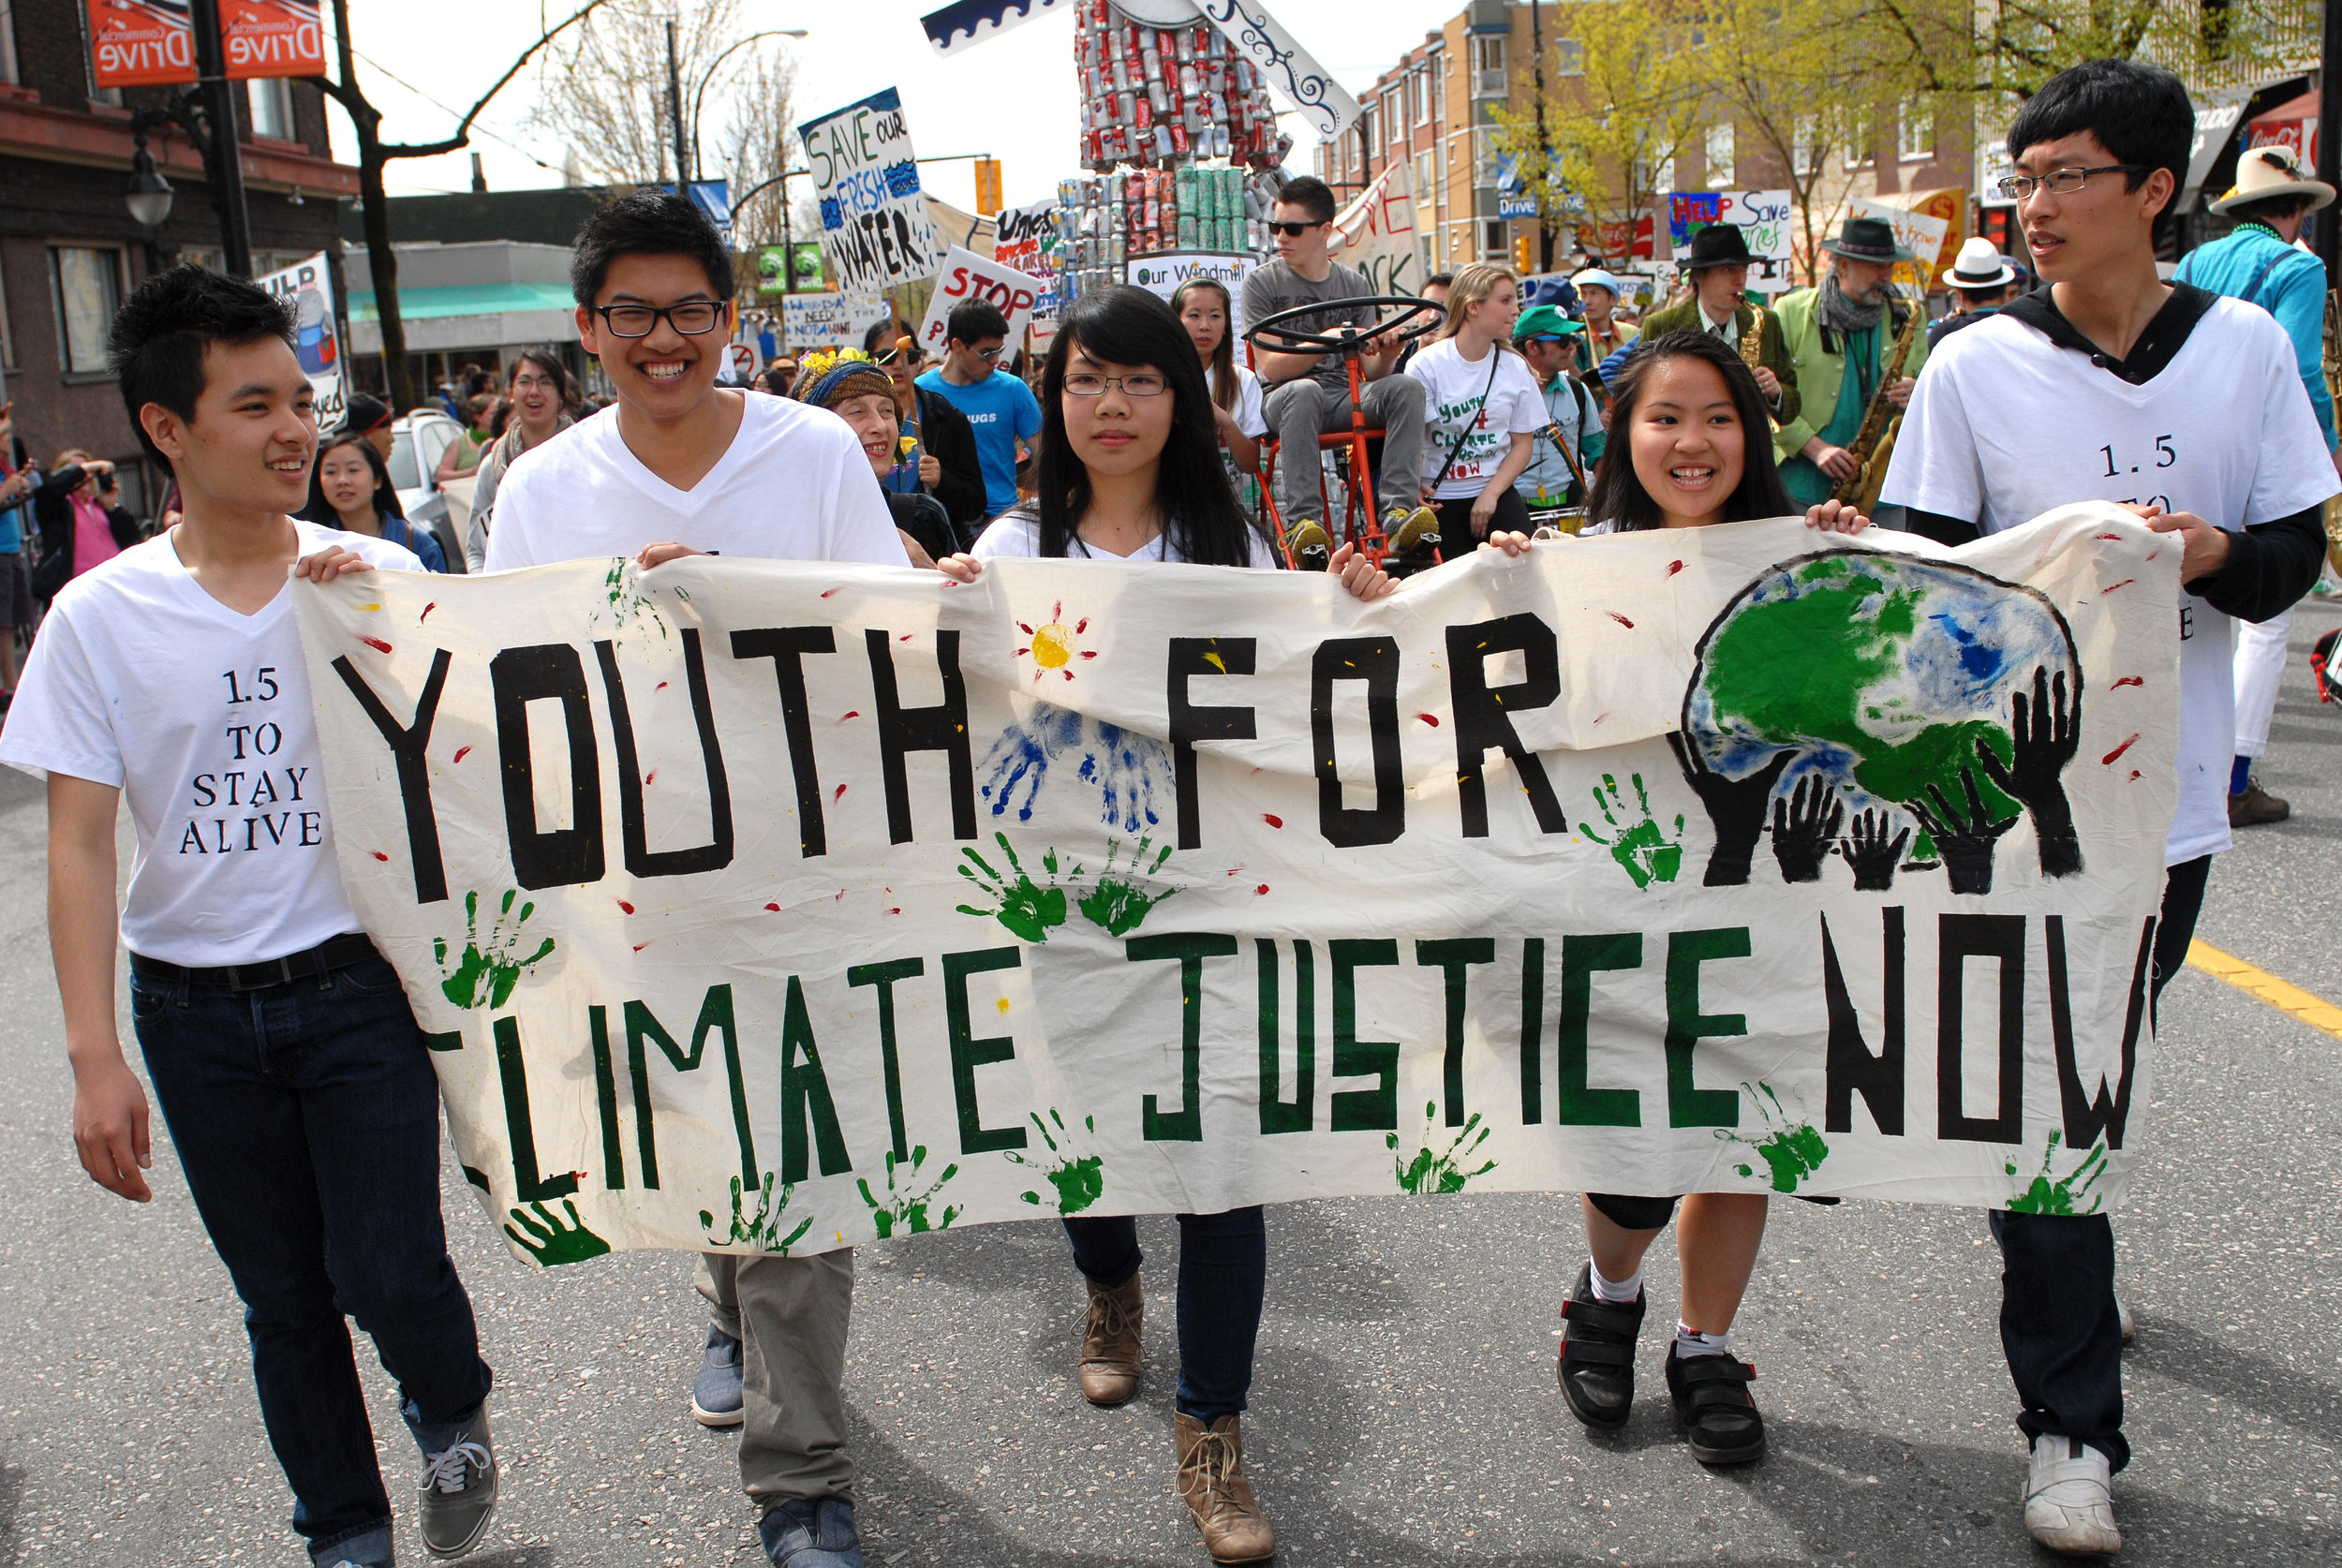 Earth Day 2012, Vancouver, BC. Editorial credit: / Shutterstock.com